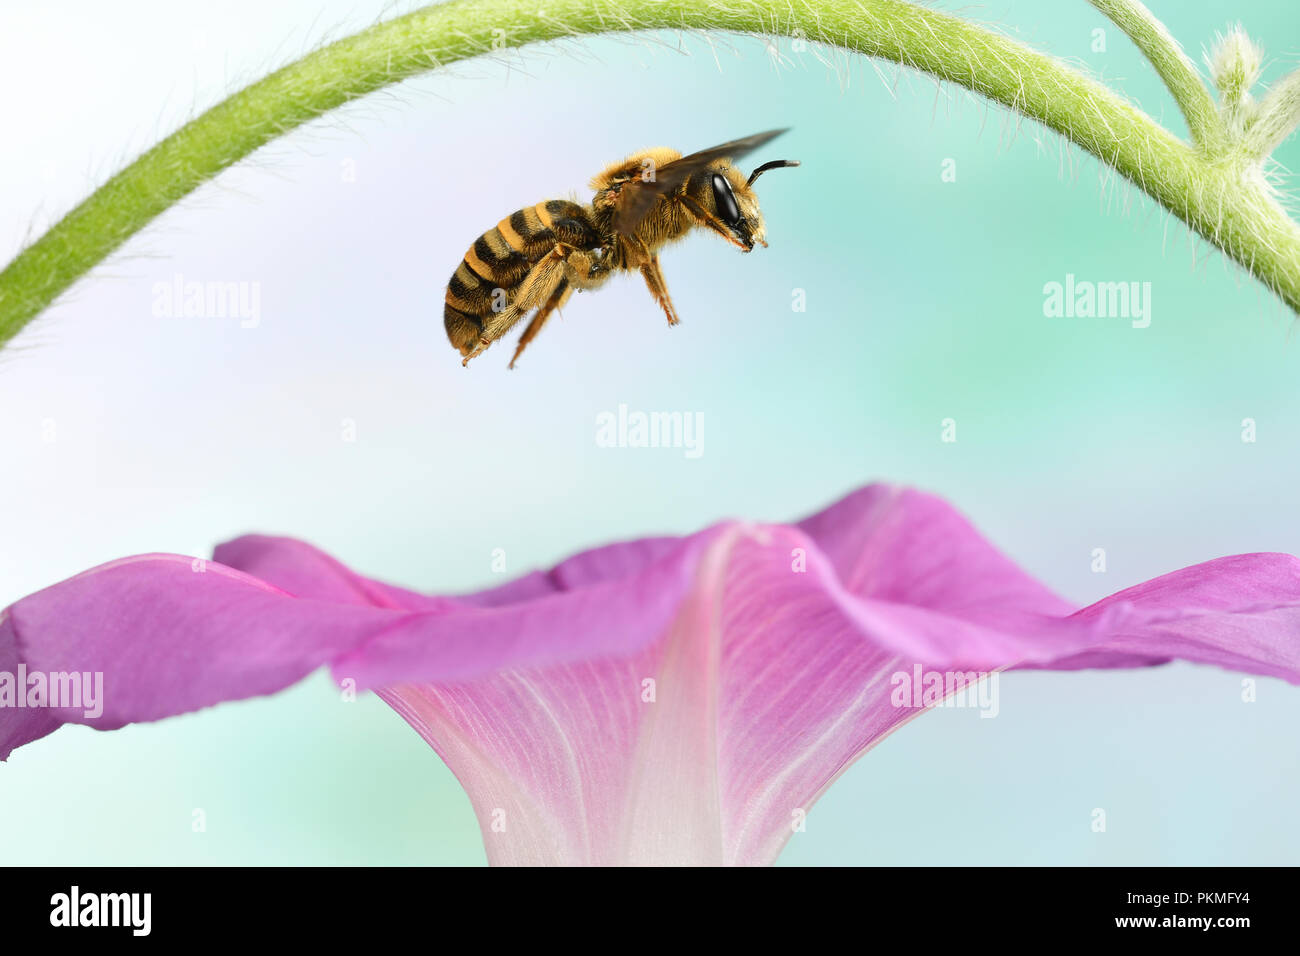 Sweat Bee (Halictus scabiosae), female, in flight, at a Morning glory (Ipomoea), Germany - Stock Image